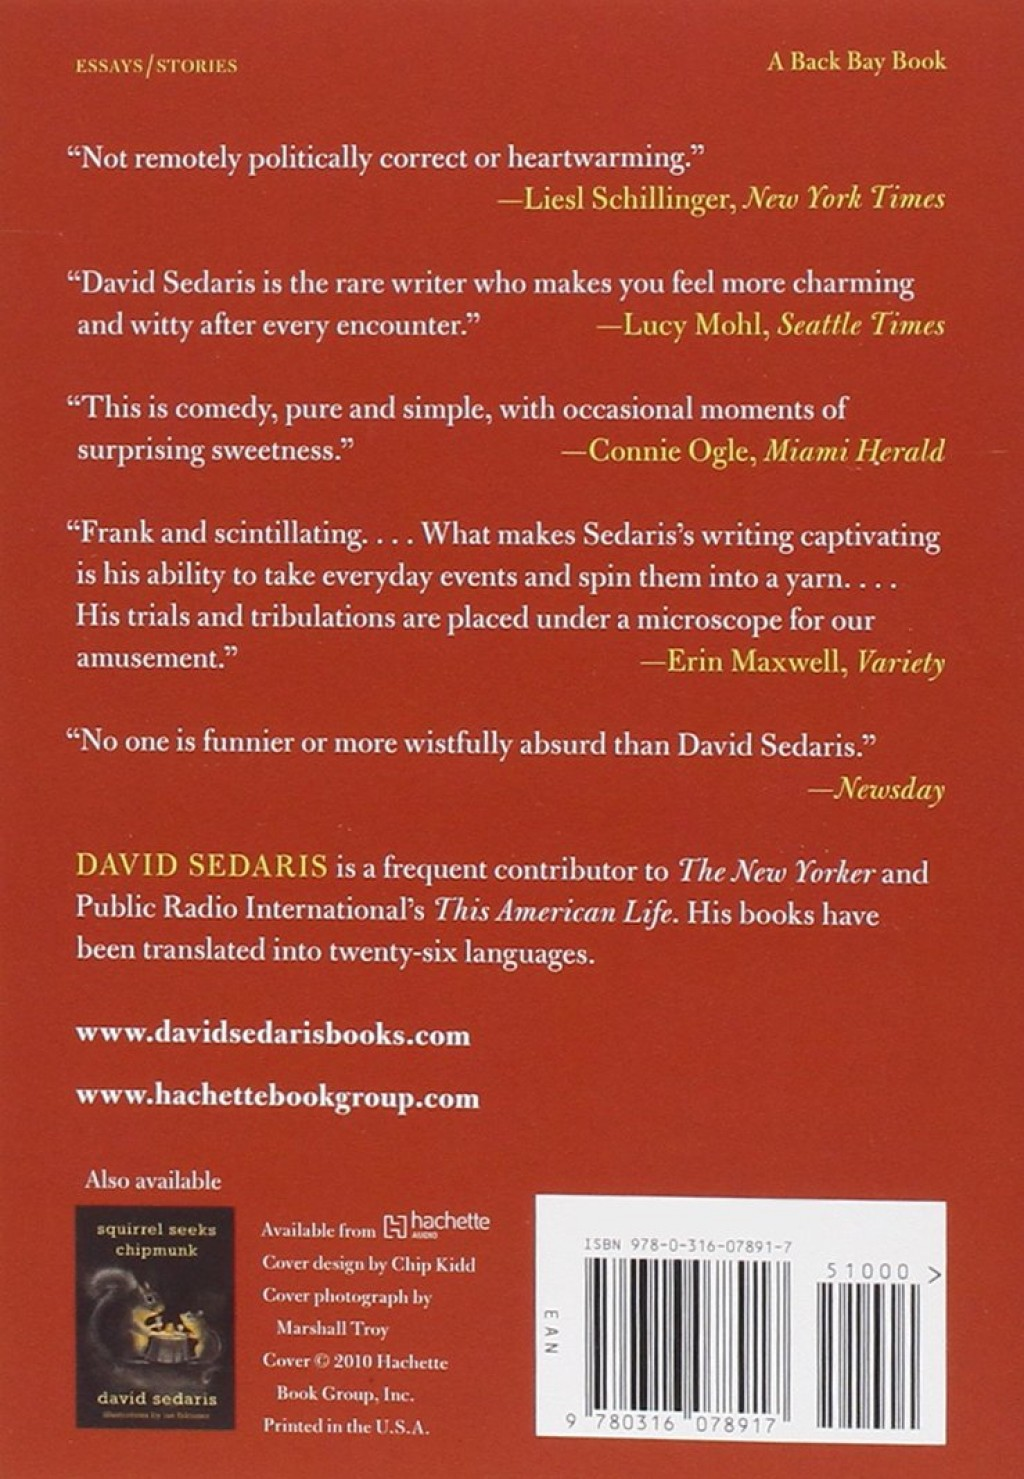 016 David Sedaris Essays Essay Example Fascinating New Yorker Calypso Large